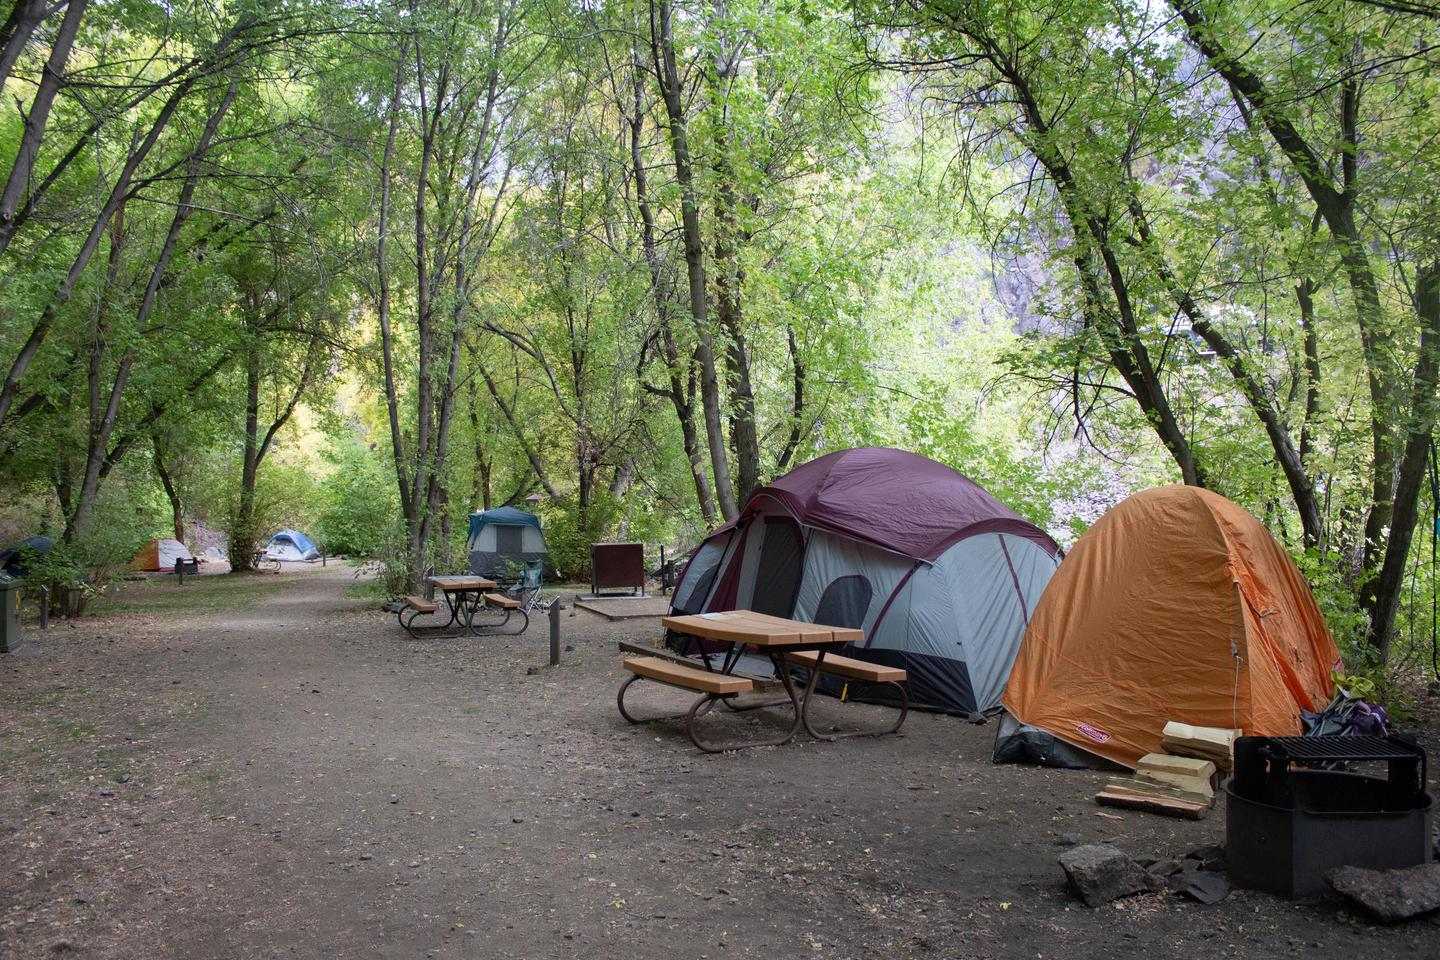 East Portal Campground - Walk-in sitesTen of the 15 sites are walk-in tent sites.